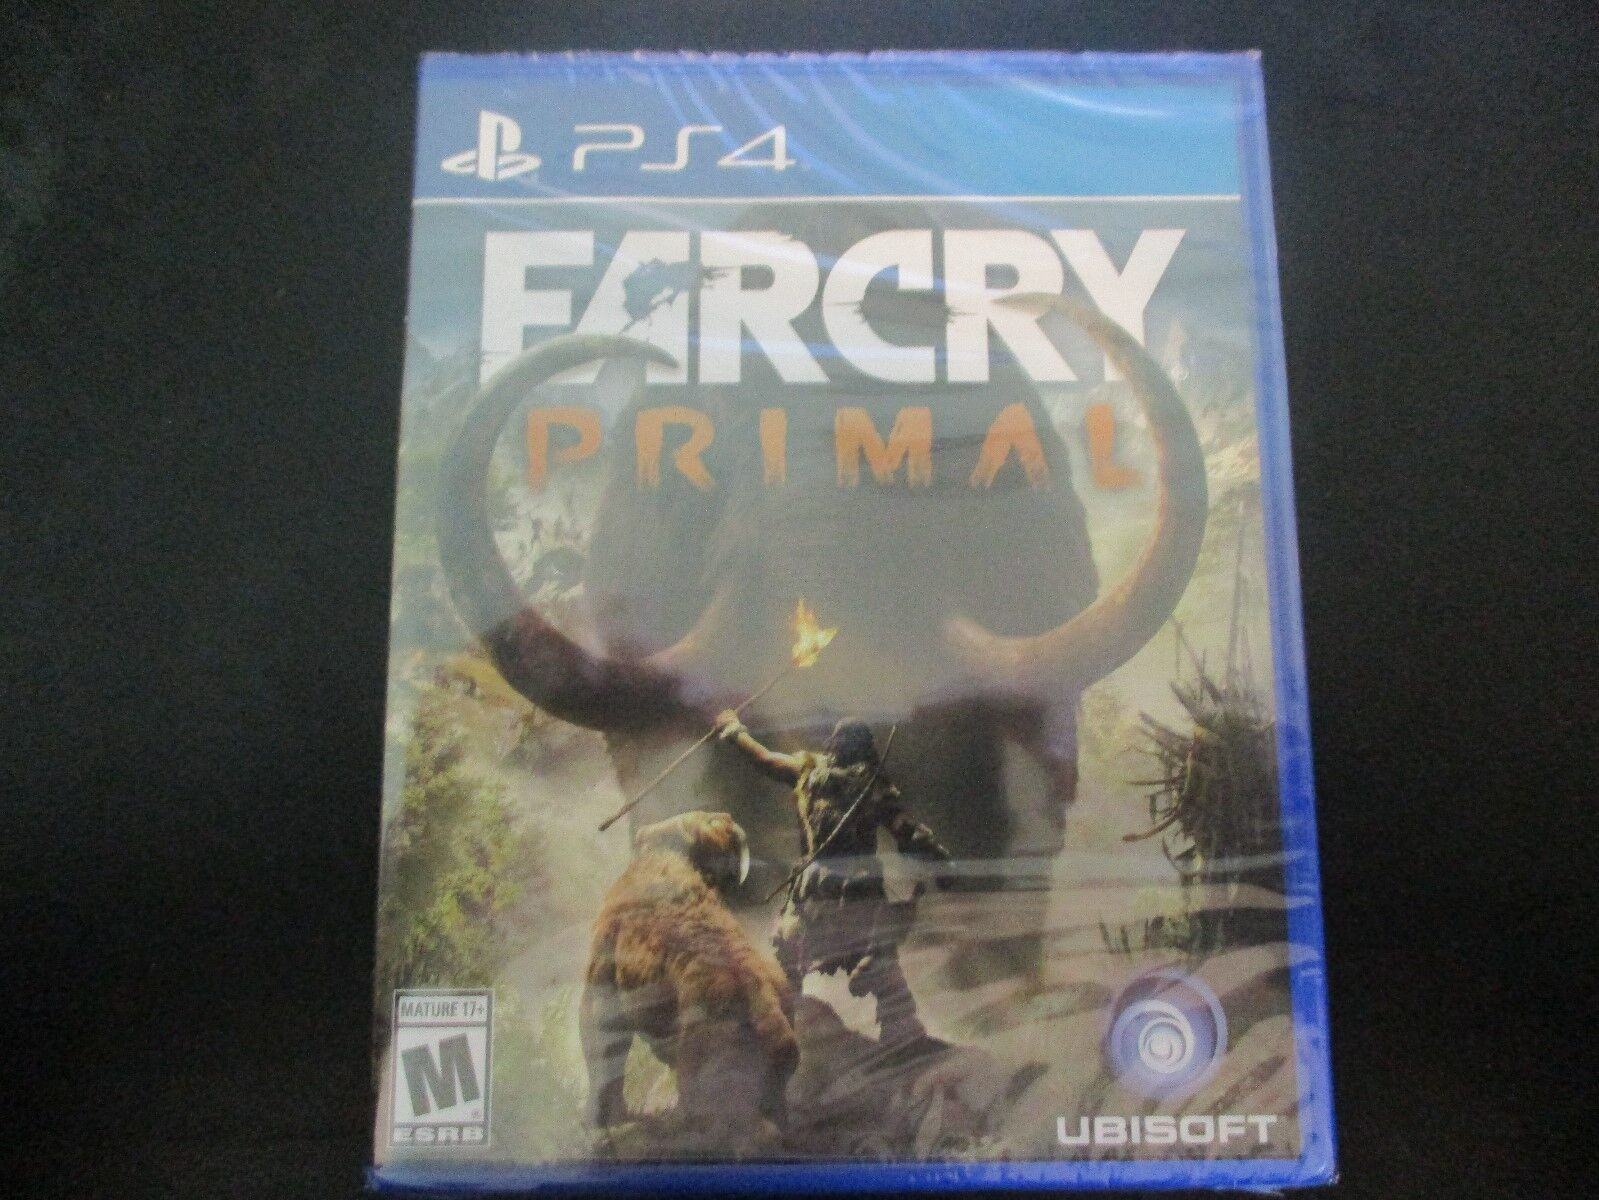 $29.95 - NEW! Far Cry Primal (Sony PlayStation 4, 2016) PS4